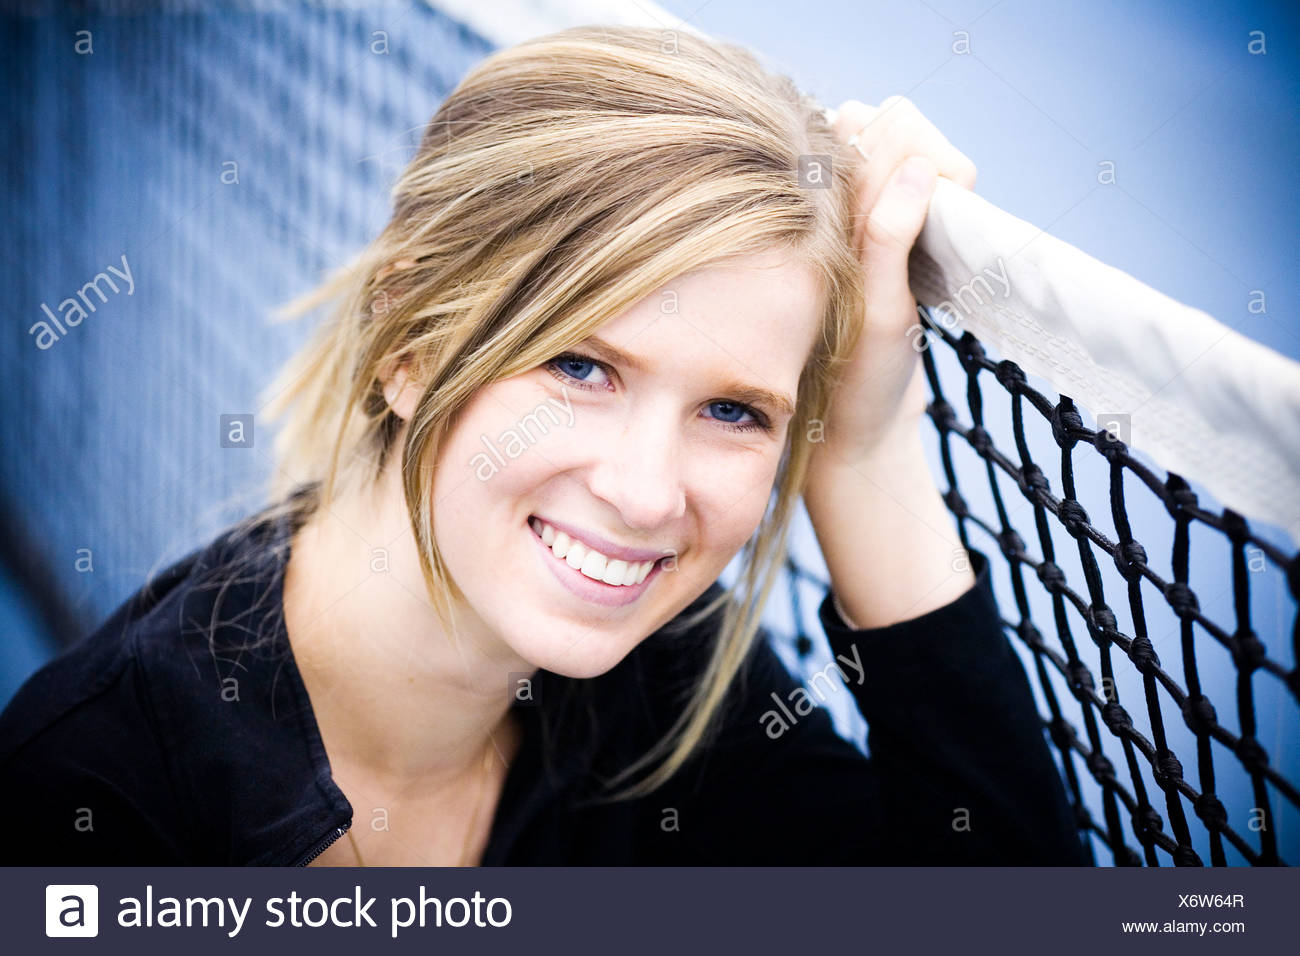 A teenager leans against a tennis court net in Charlotte, North Carolina. - Stock Image